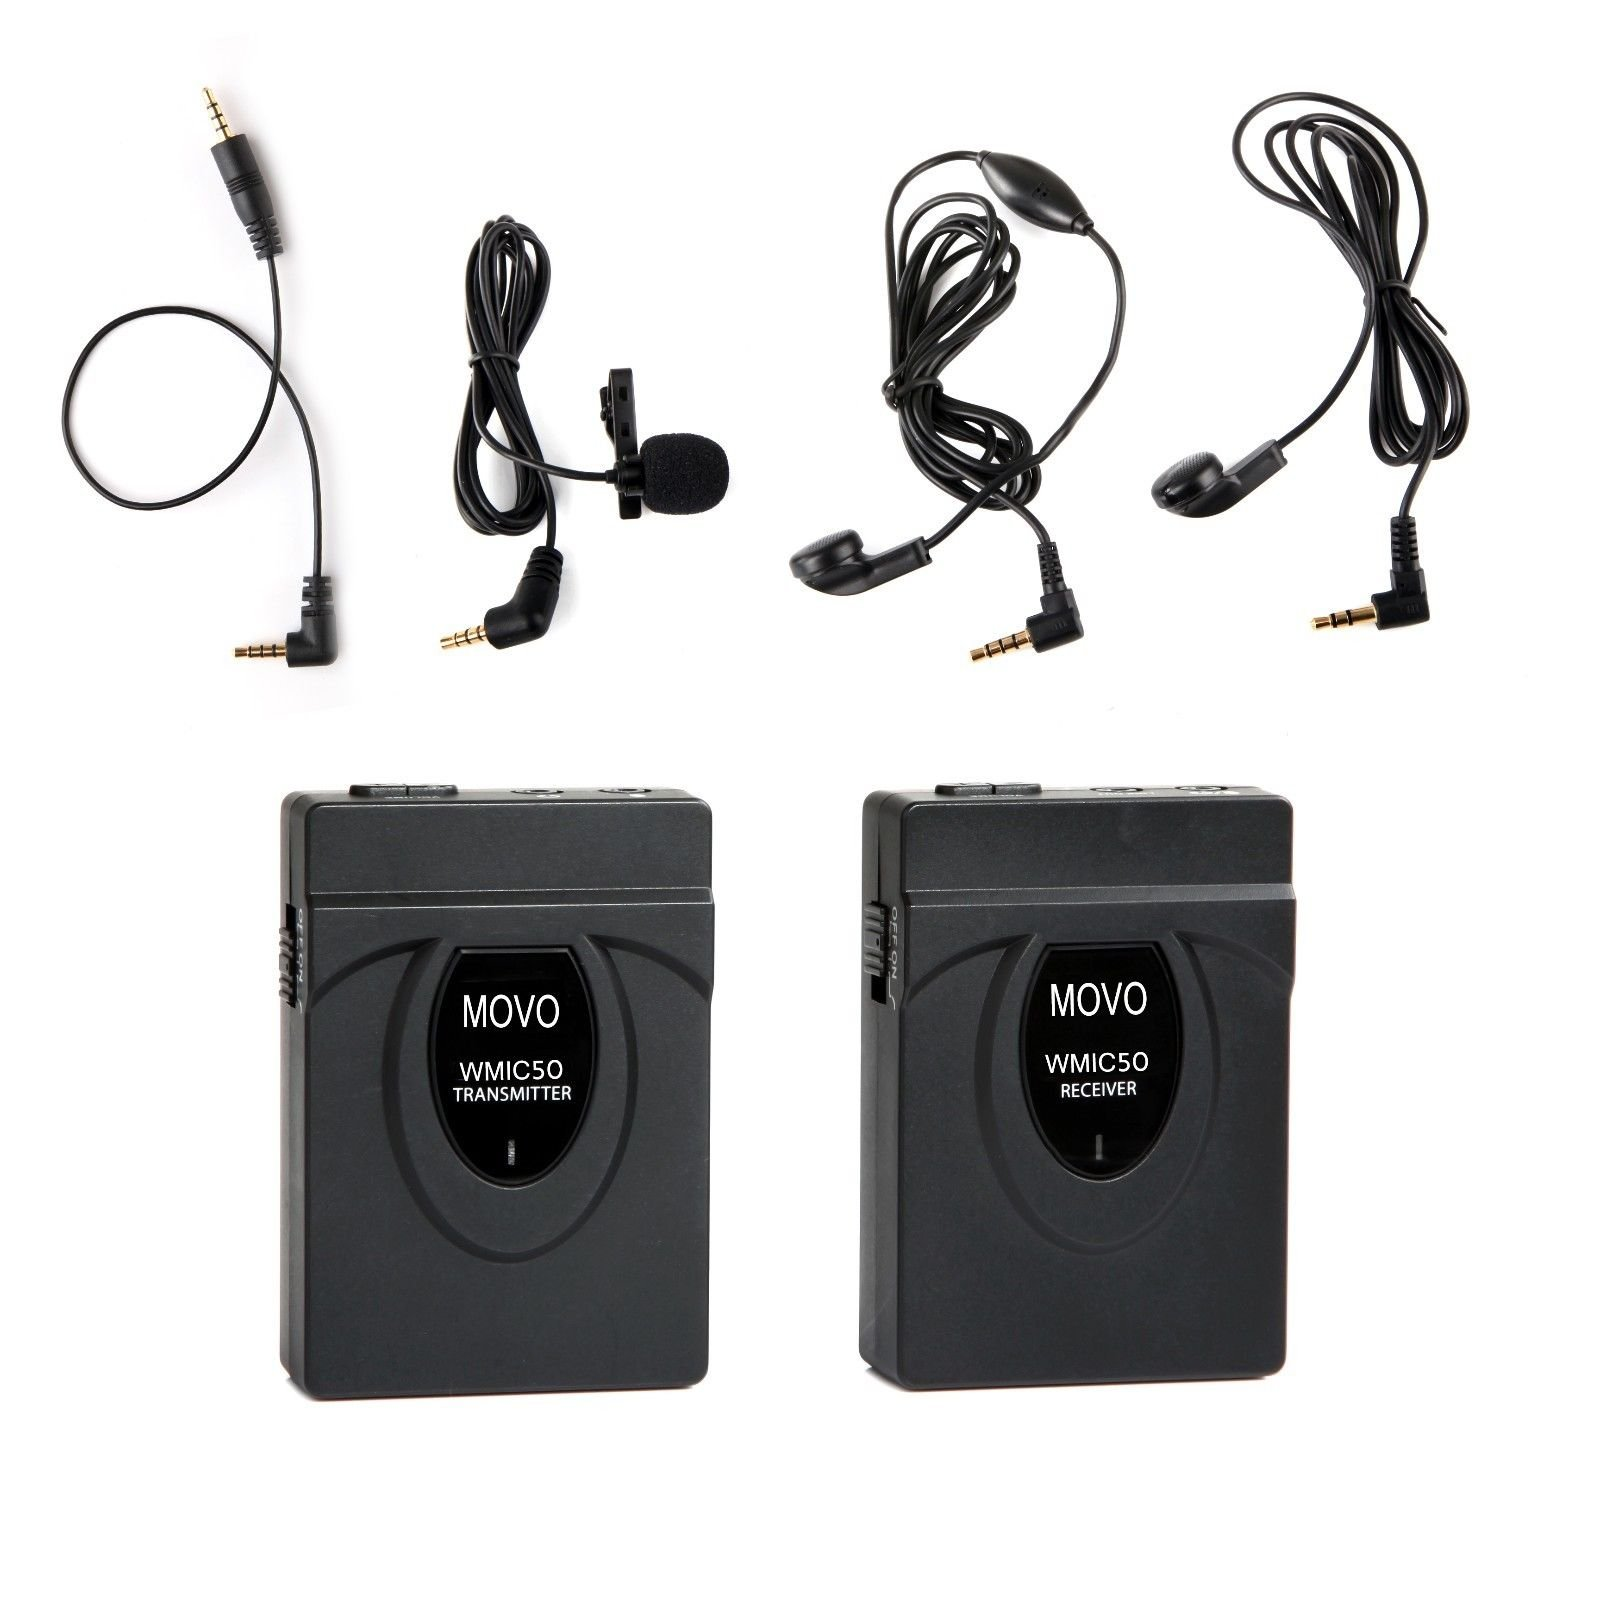 Movo WMIC50 2.4GHz Wireless Lavalier Microphone System with Integrated 164-foot Range Antenna (Includes Transmitter with Belt Clip, Receiver with Camera Shoe, Lavalier and 2 Earphones) by Movo